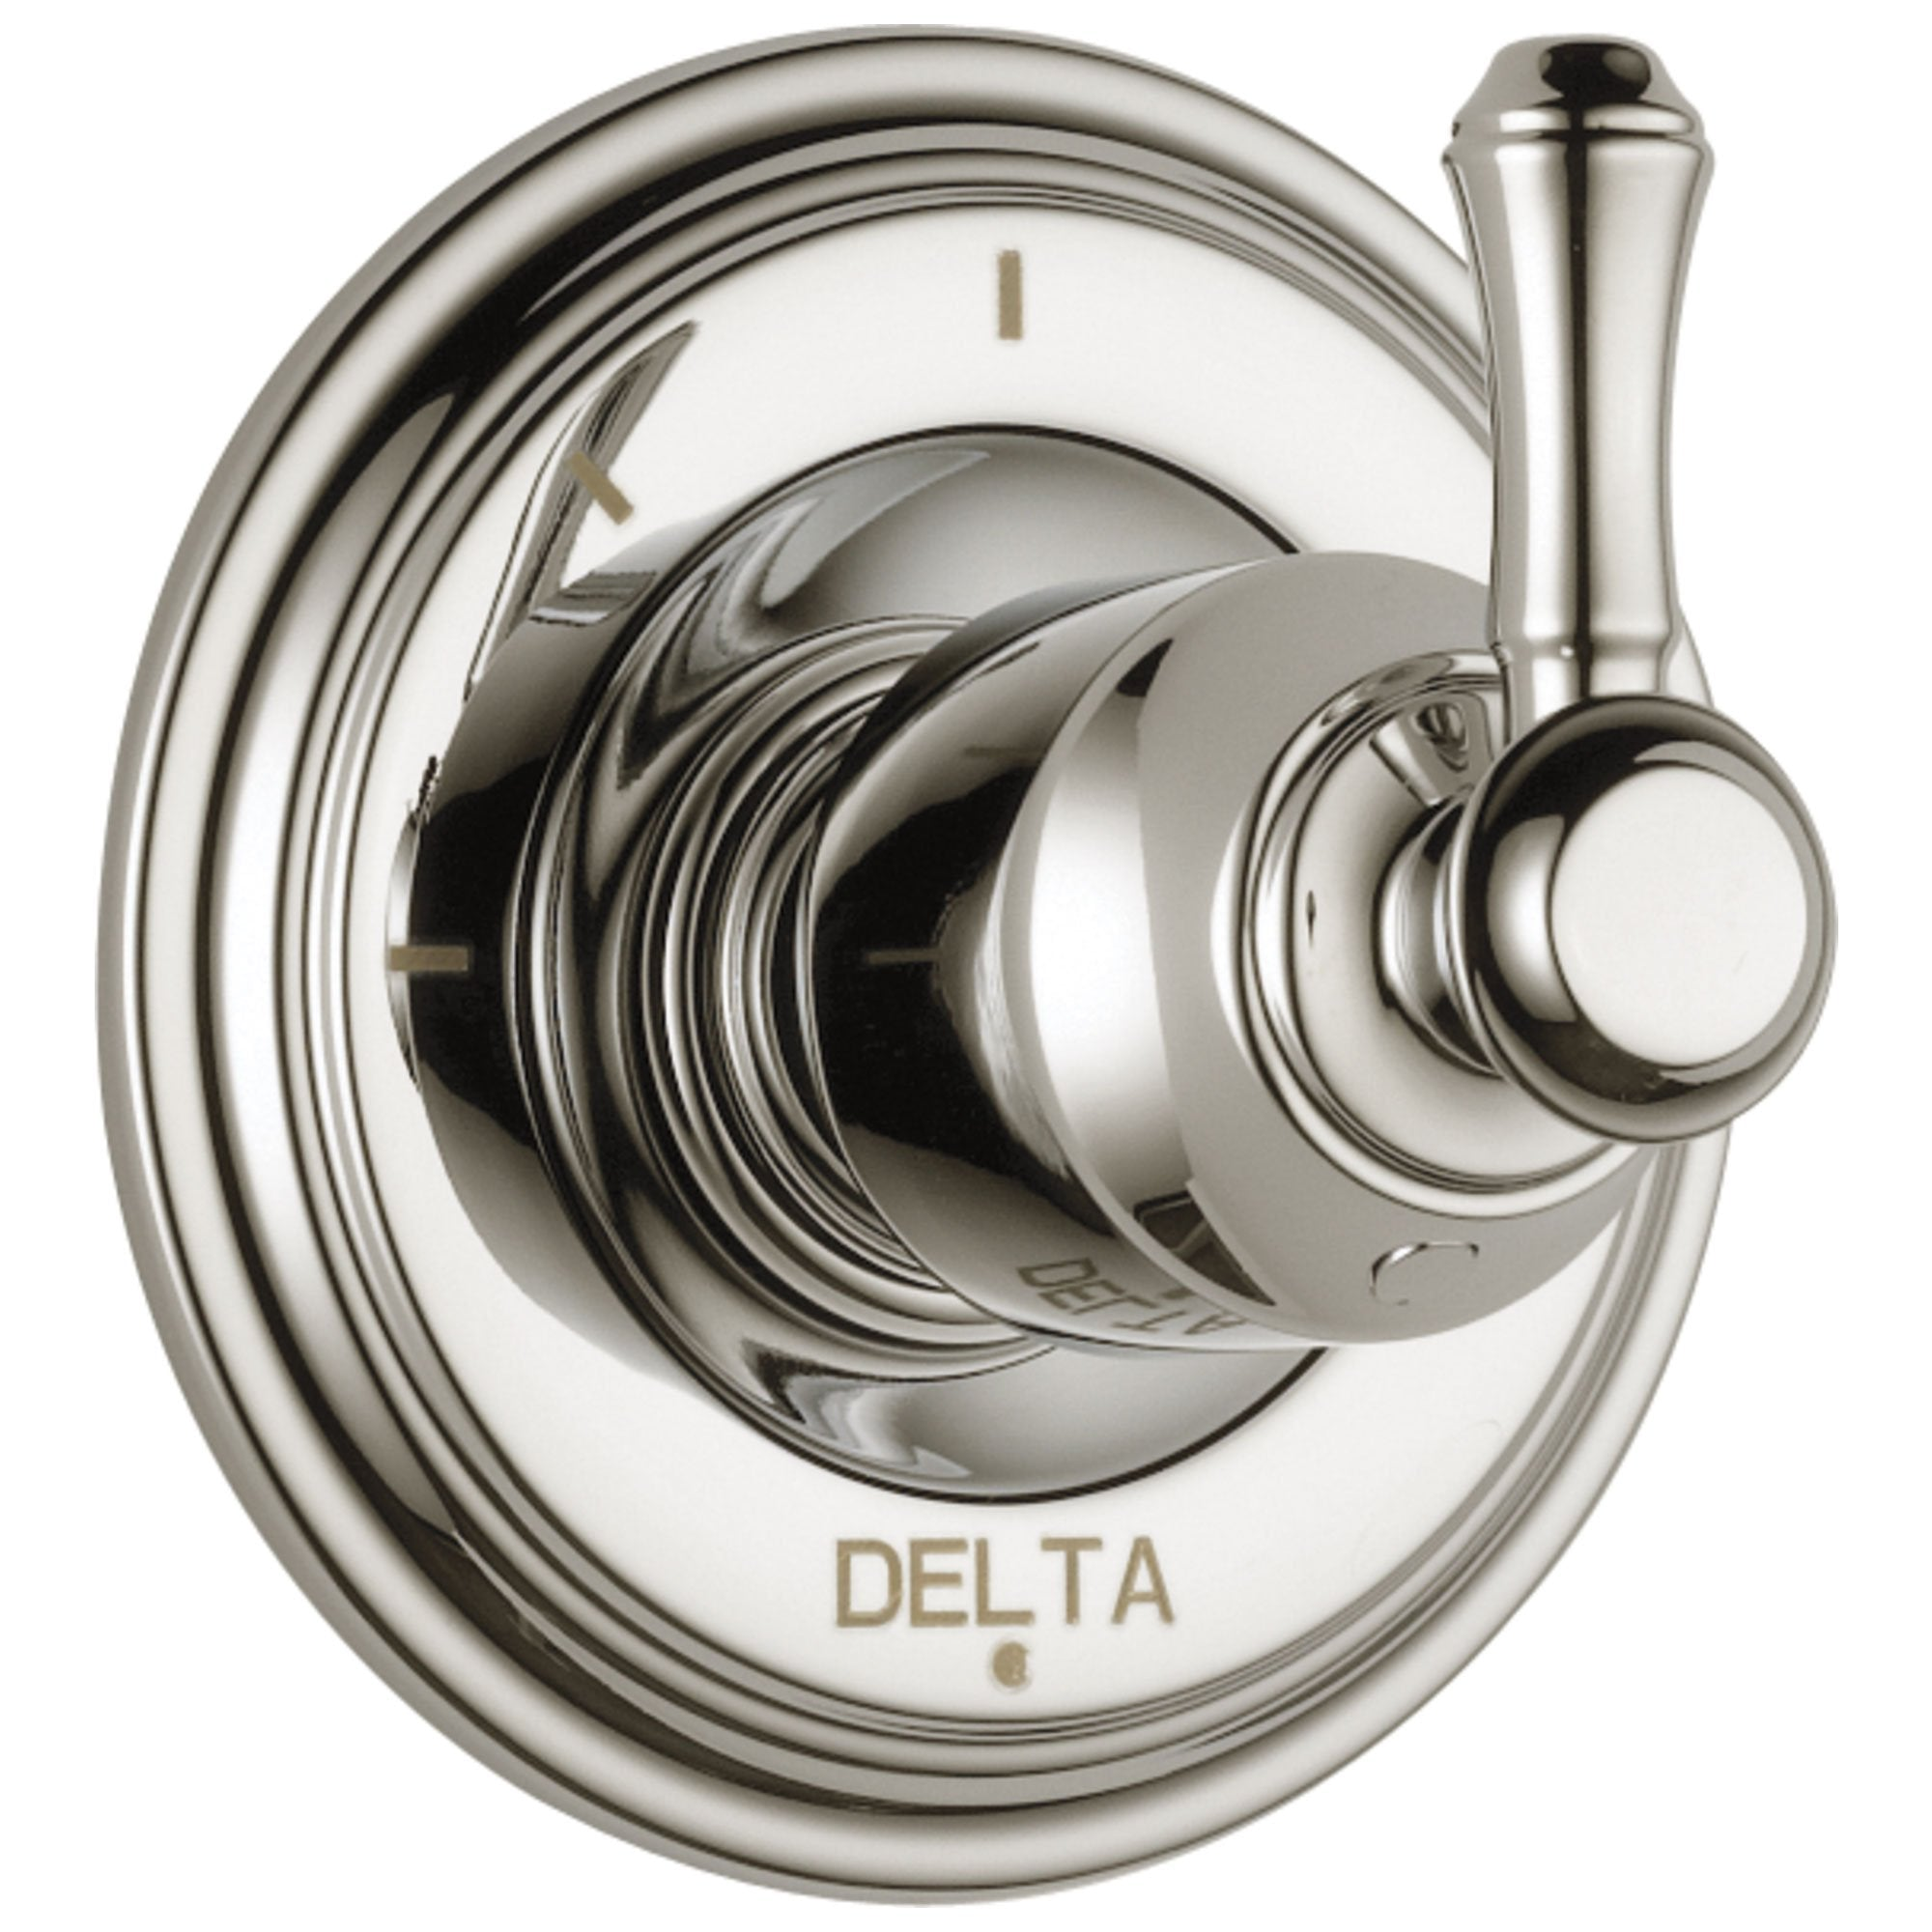 Delta Cassidy Collection Polished Nickel Finish 3-Setting 2-Port Shower Diverter INCLUDES Single Lever Handle and Rough-in Valve D1703V